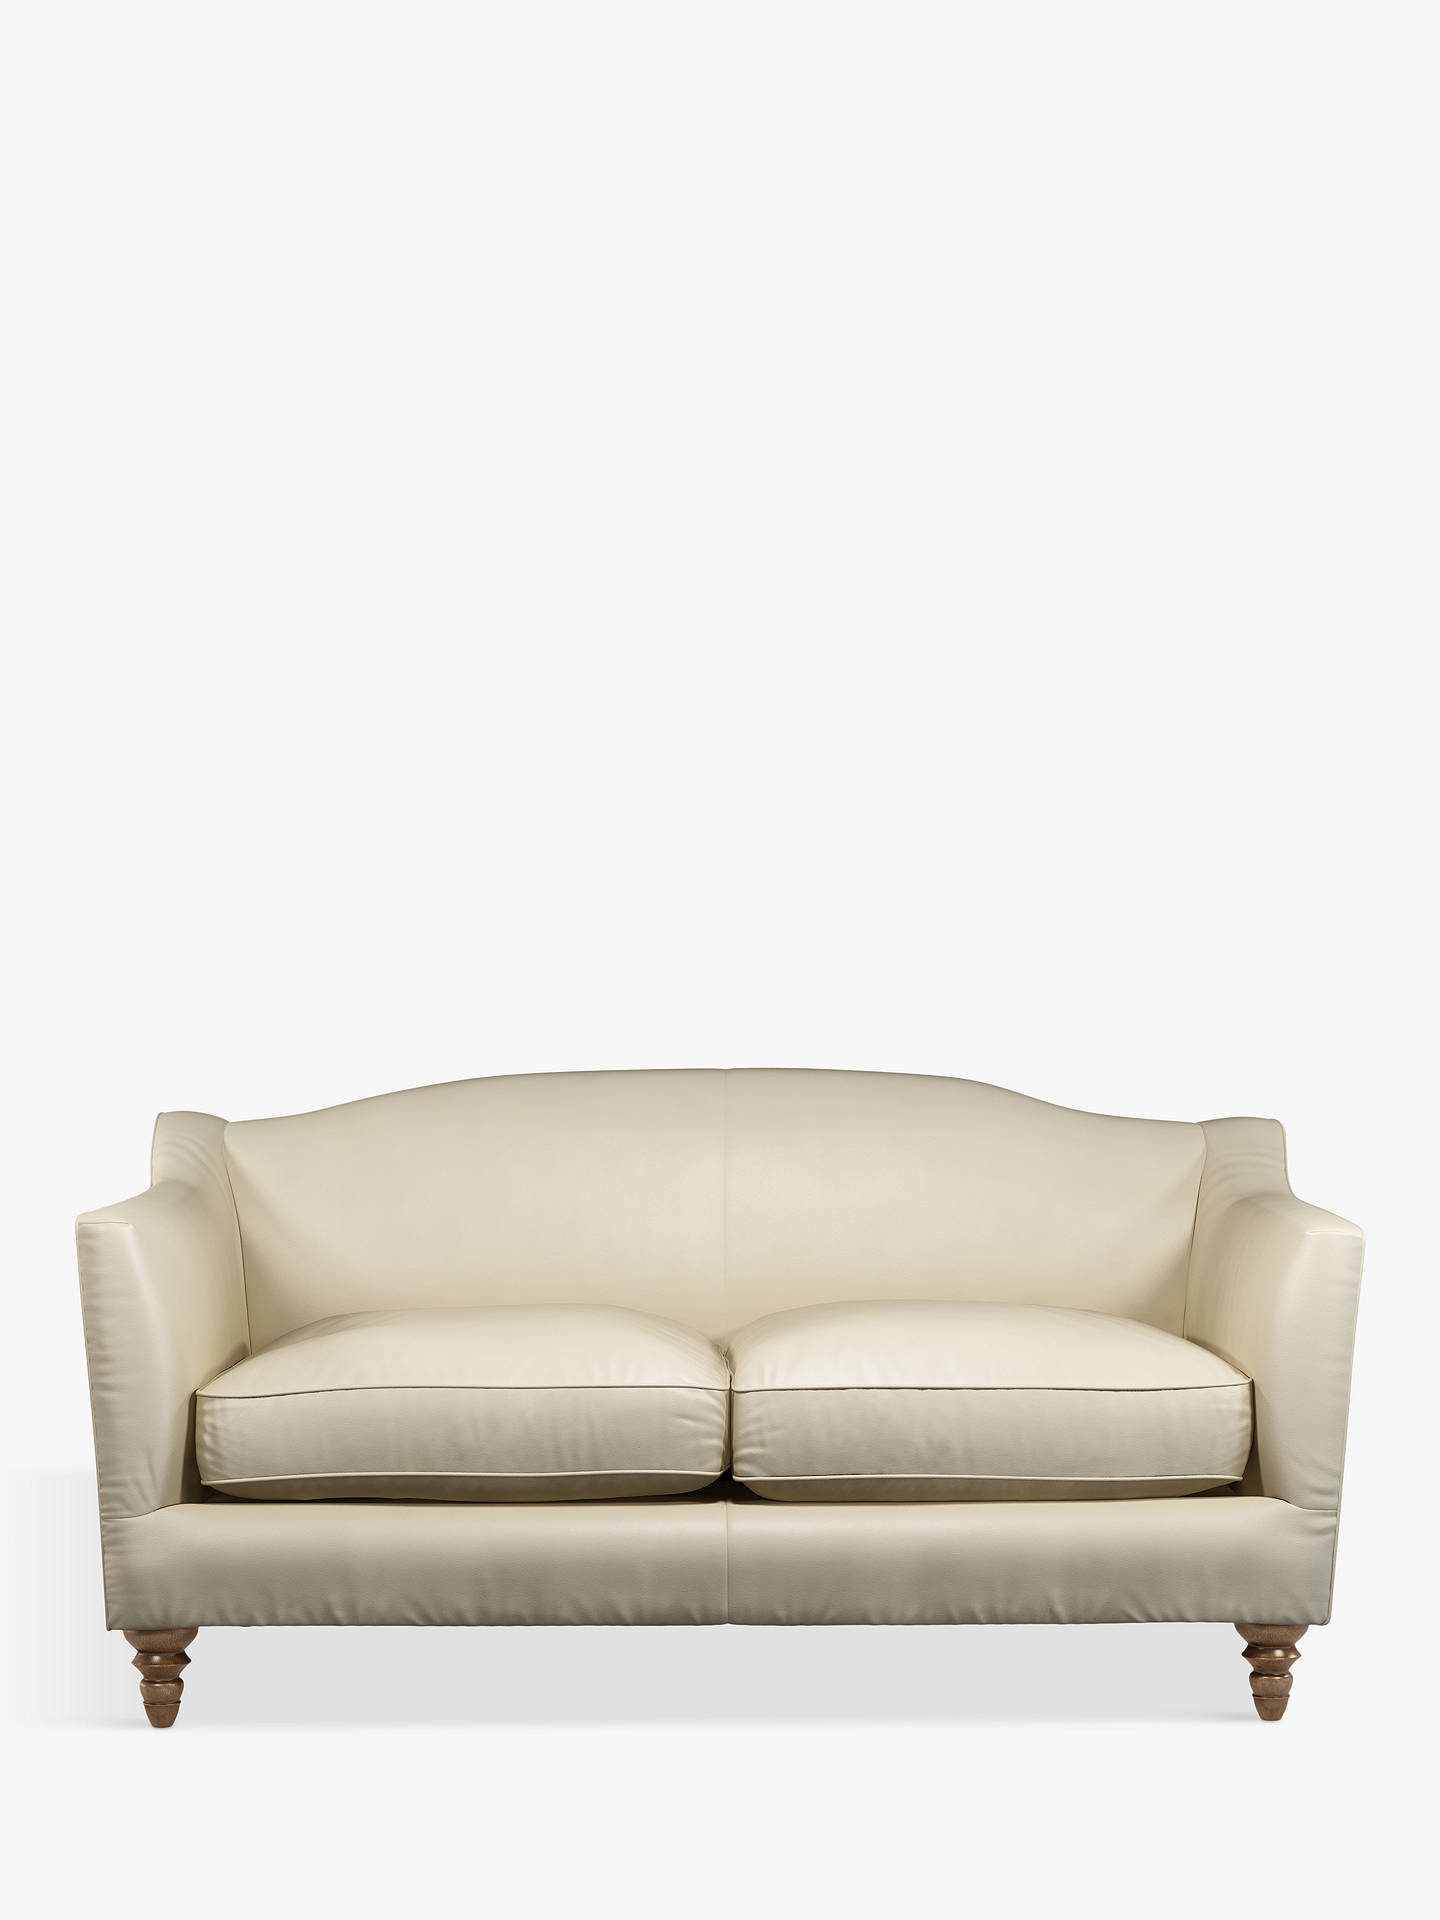 Buy Croft Collection Melrose Small 2 Seater Leather Sofa, Dark Leg, Contempo Ivory Online at johnlewis.com